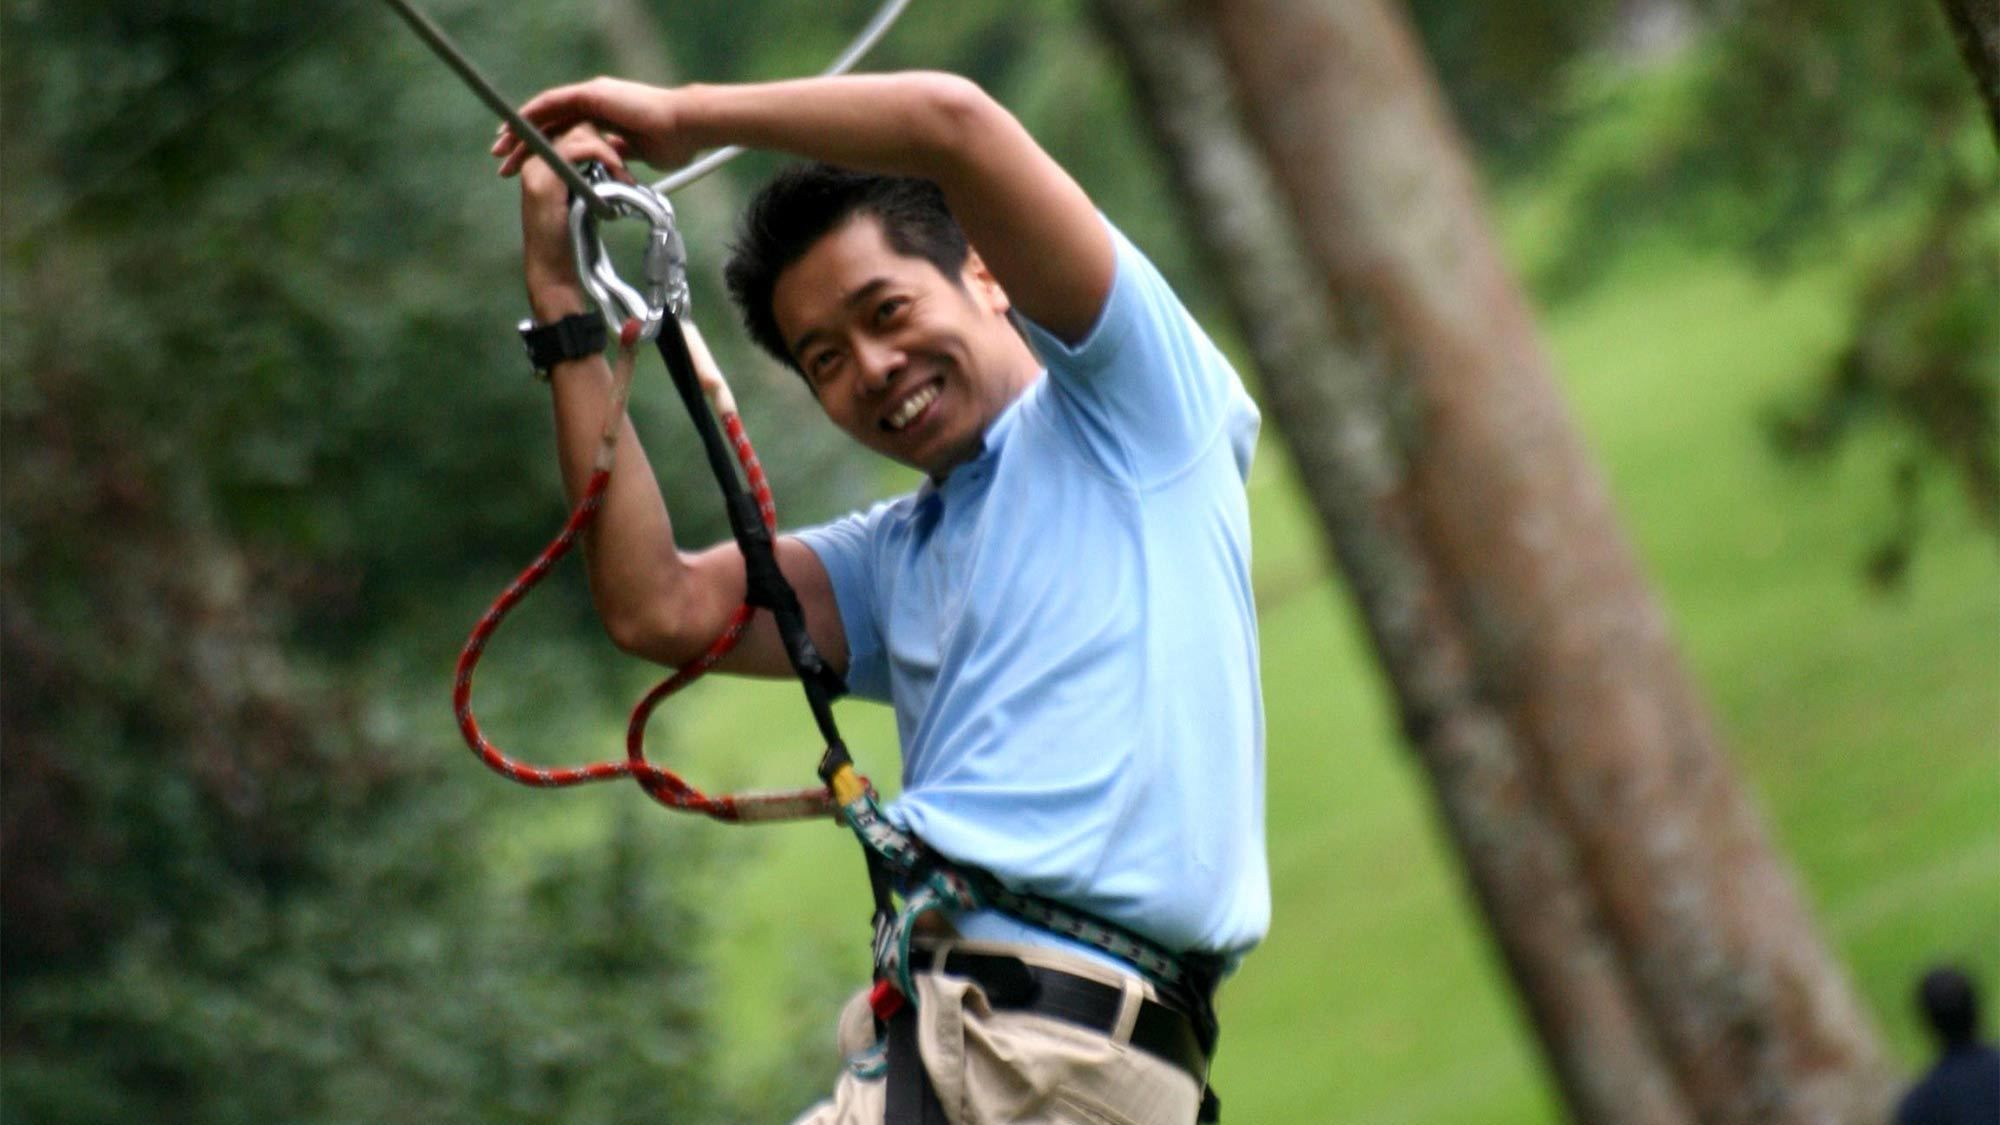 Guest at the Bali Treetop Adventure Park